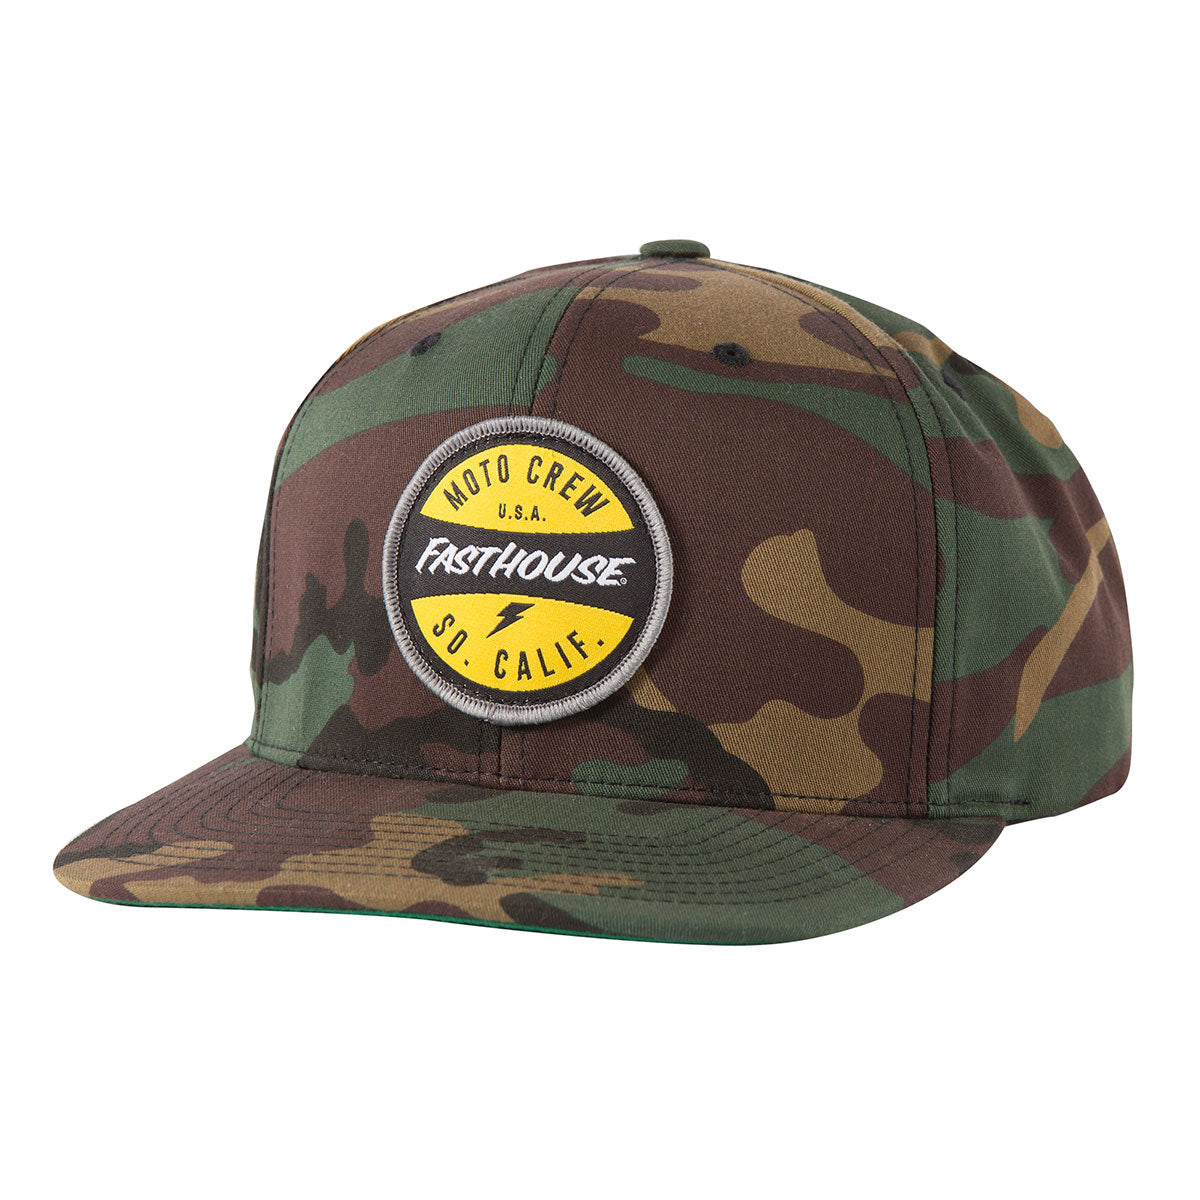 Fasthouse - So Cal Hat - Camo